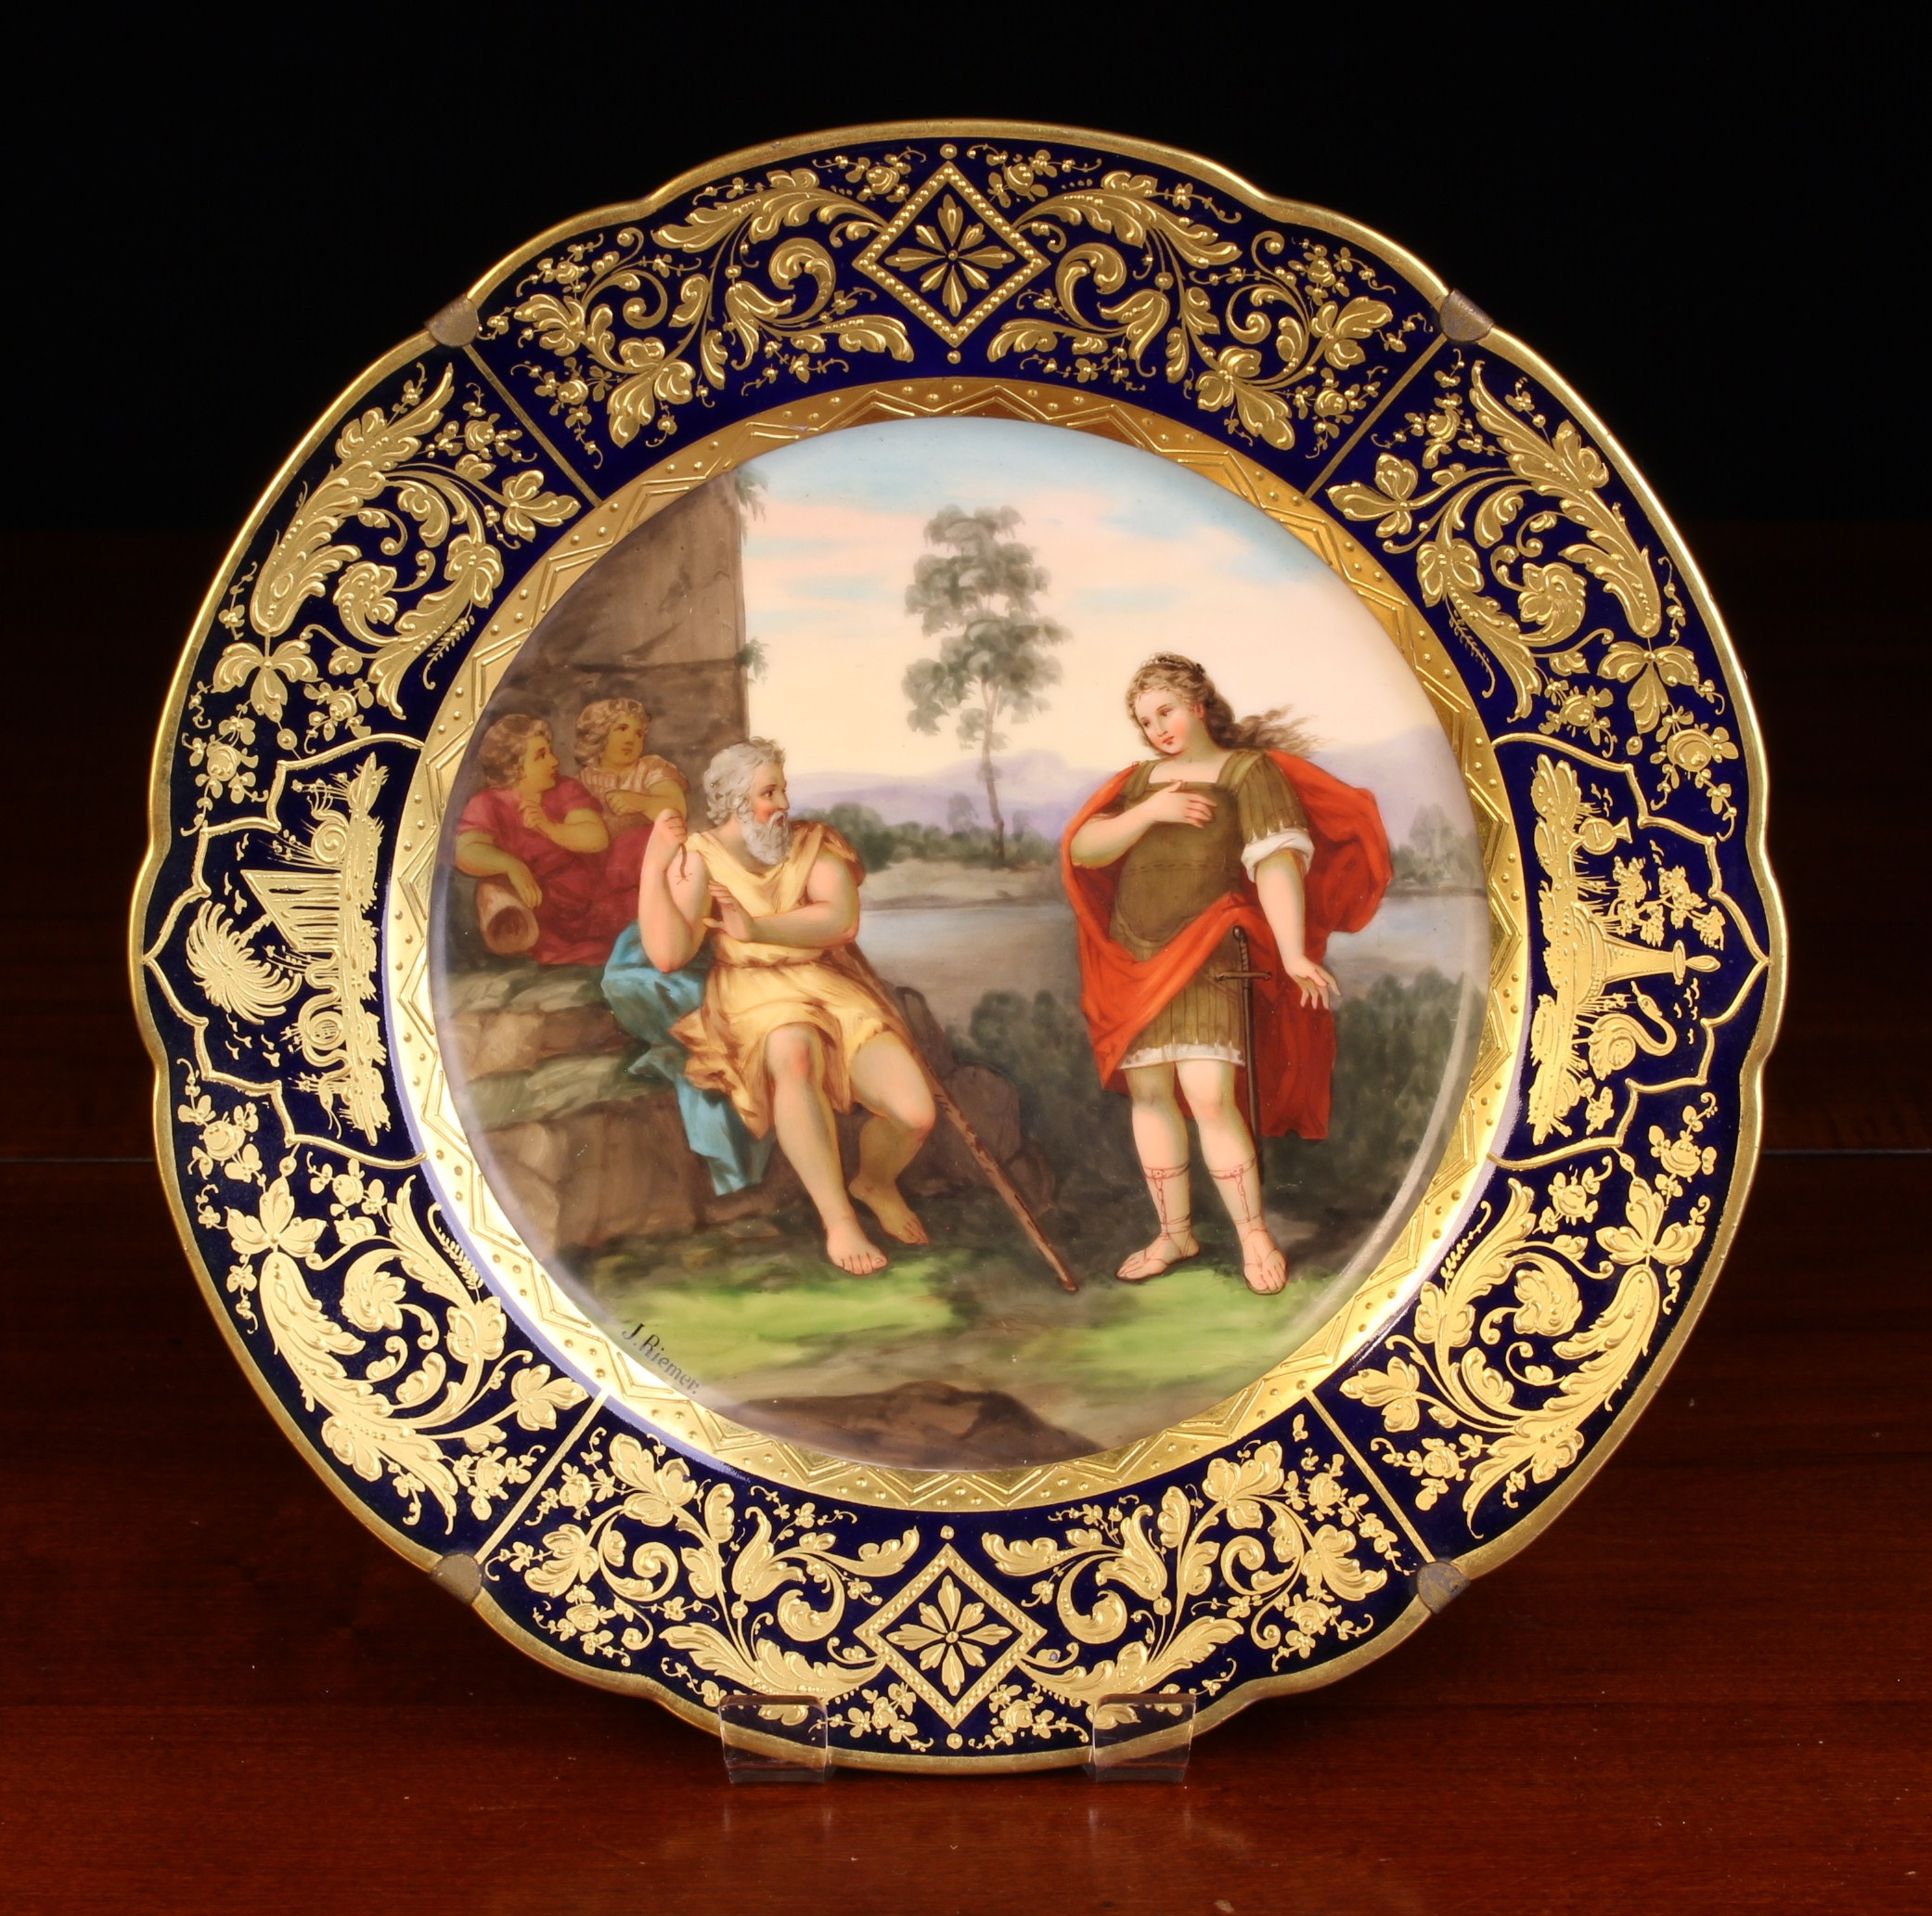 A Antique Royal Vienna Style Porcelain Cabinet Plate with C.M. Hutschenreather mark.